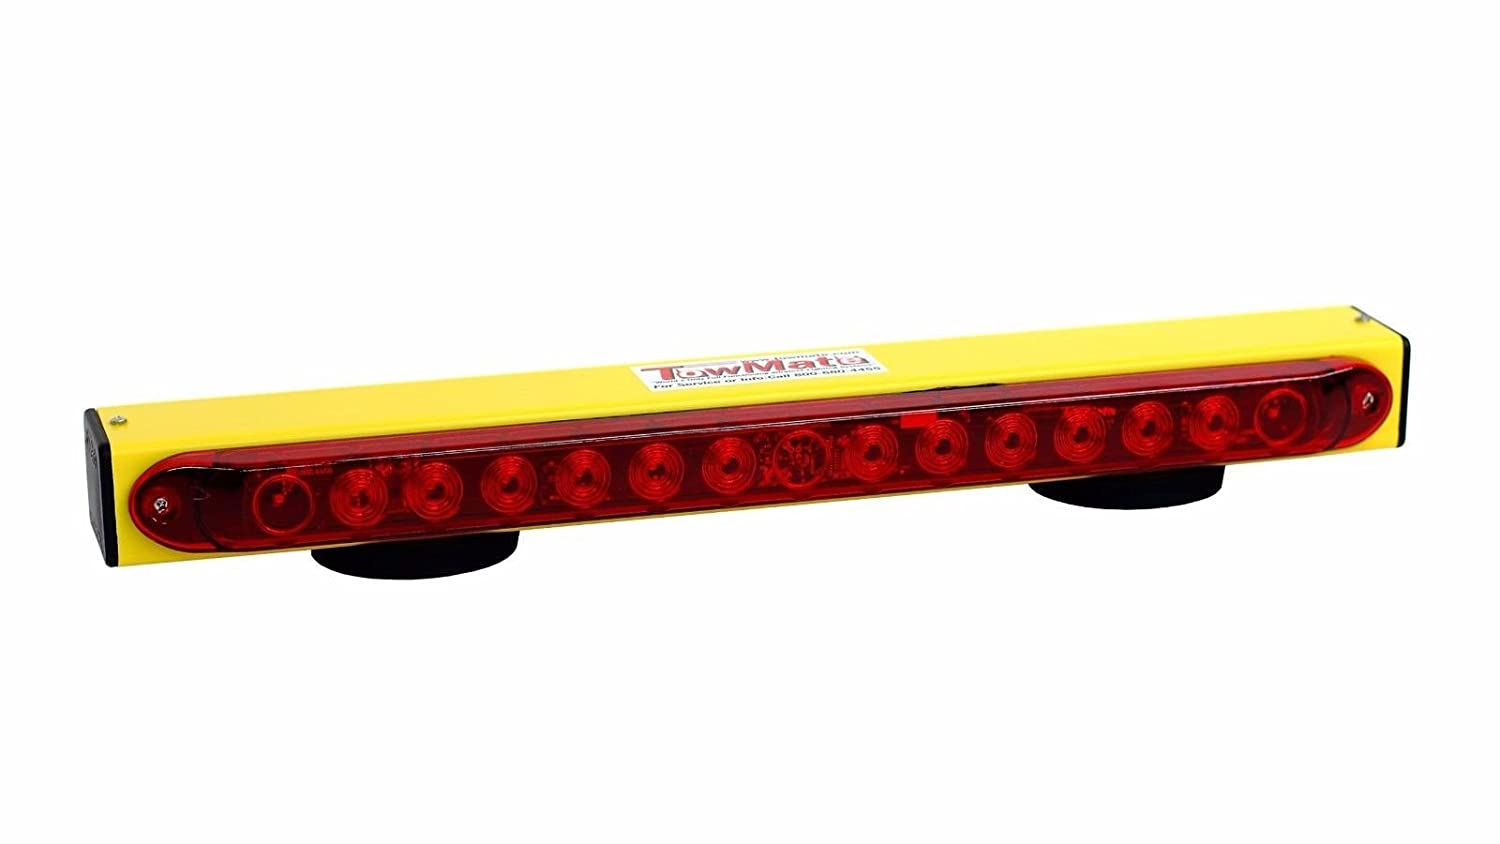 Tail BA Products New Sunlight TM22Y 7 Way RV Flat Blade Style Transmitter 22 Wireless Tow Light with LED Stop Turn Towmate Yellow Sun Light TM22Y-7RV